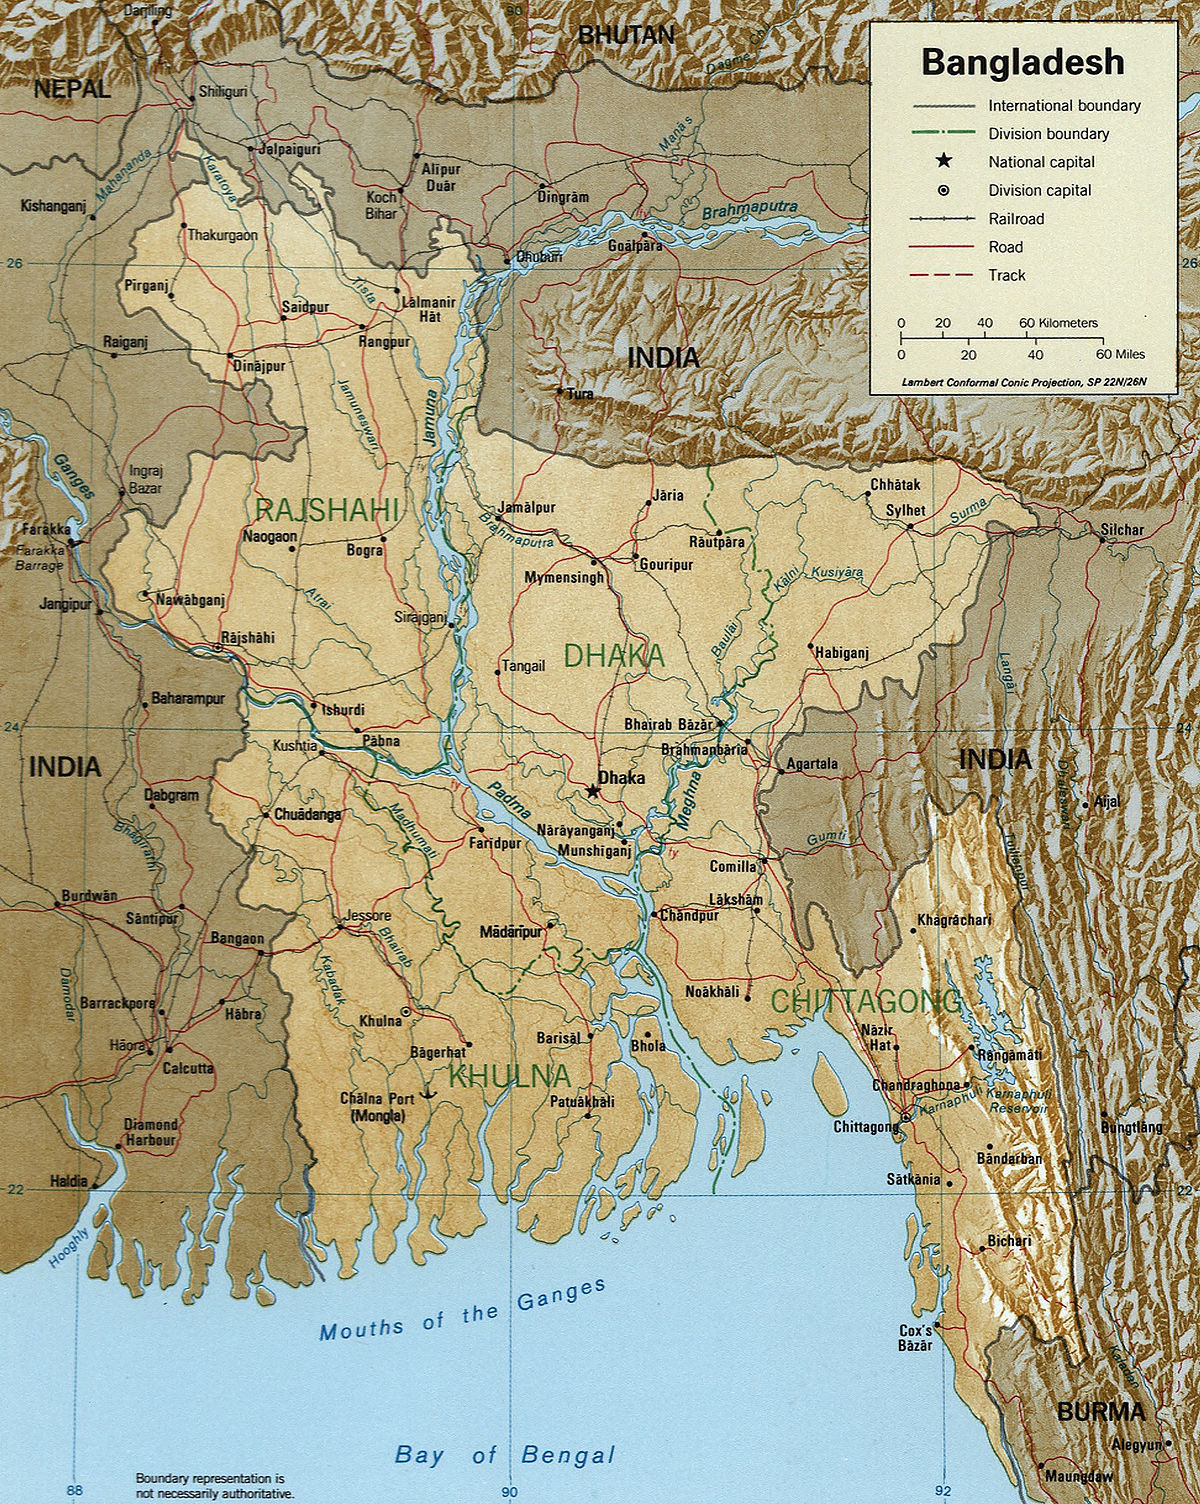 List of rivers of Bangladesh - Wikipedia